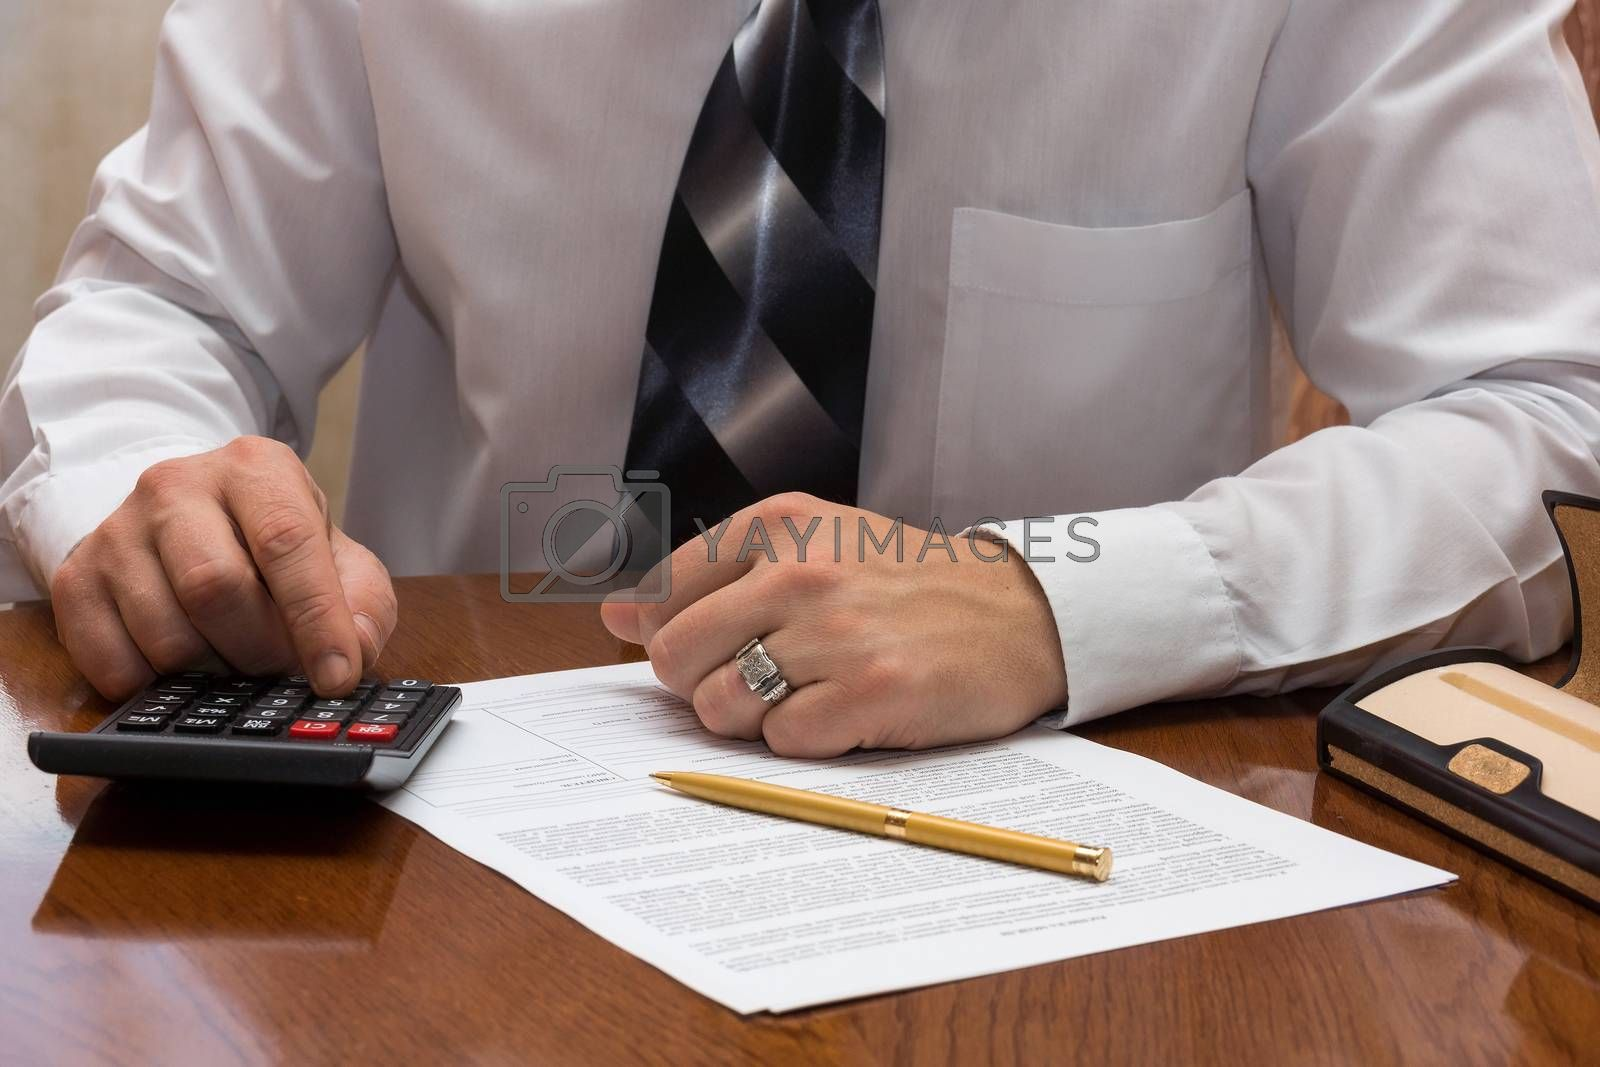 The photograph shows the person who signs the document